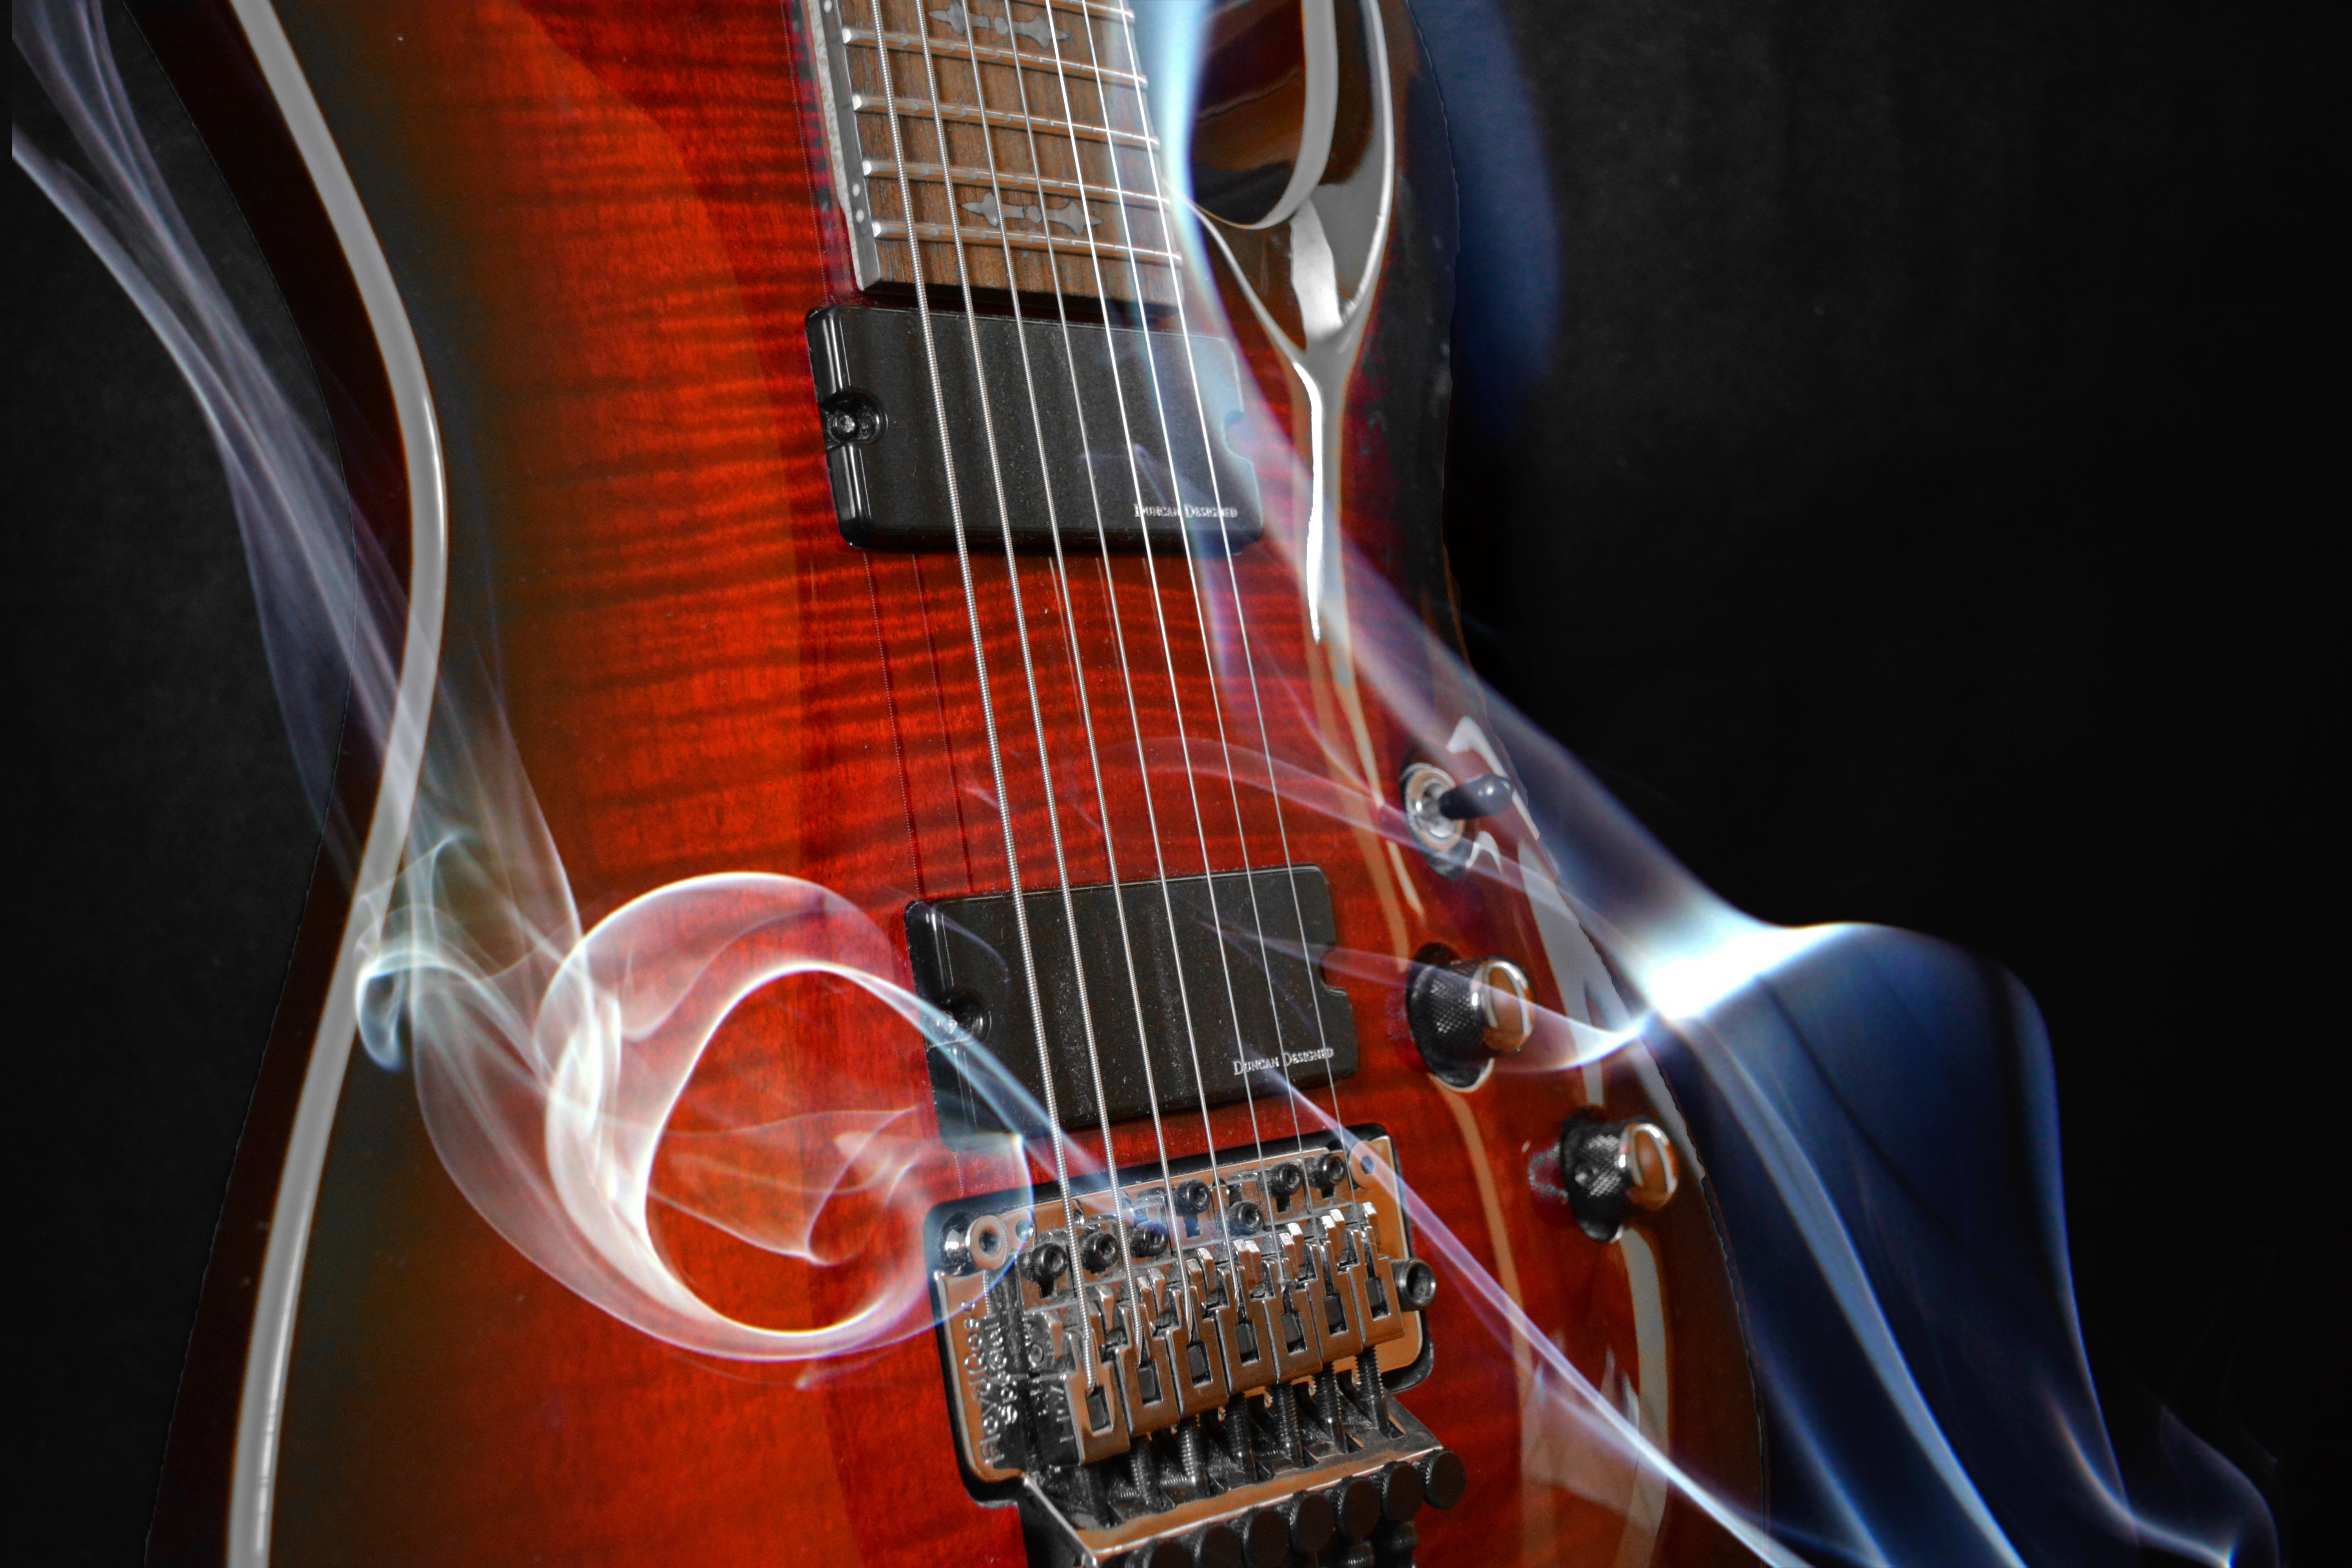 Wallpaper Guitar Hd 5k Music 10086: Elctric Guitar 5k, HD Others, 4k Wallpapers, Images